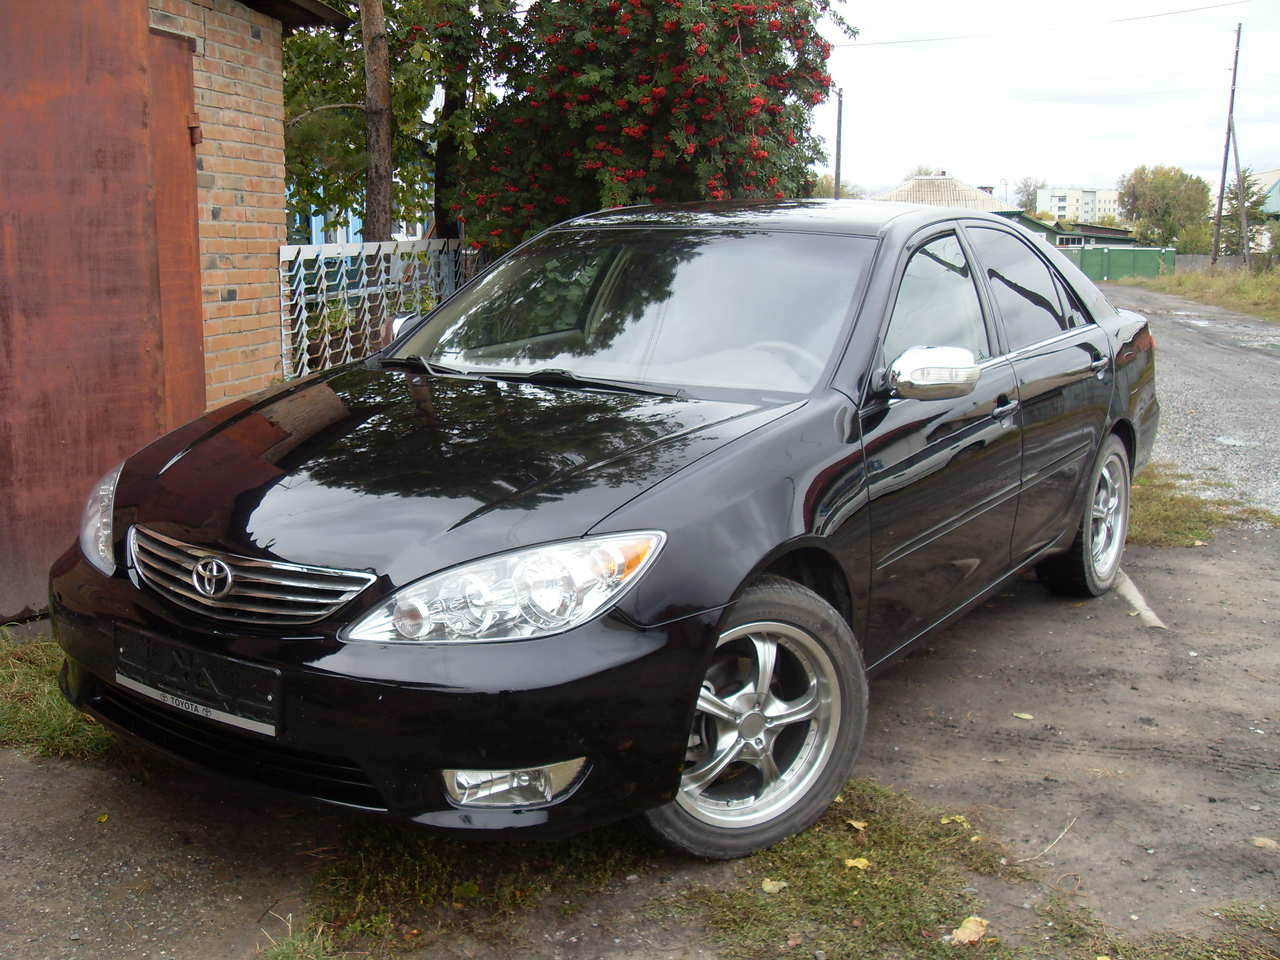 2005 toyota camry pictures gasoline ff automatic for sale. Black Bedroom Furniture Sets. Home Design Ideas